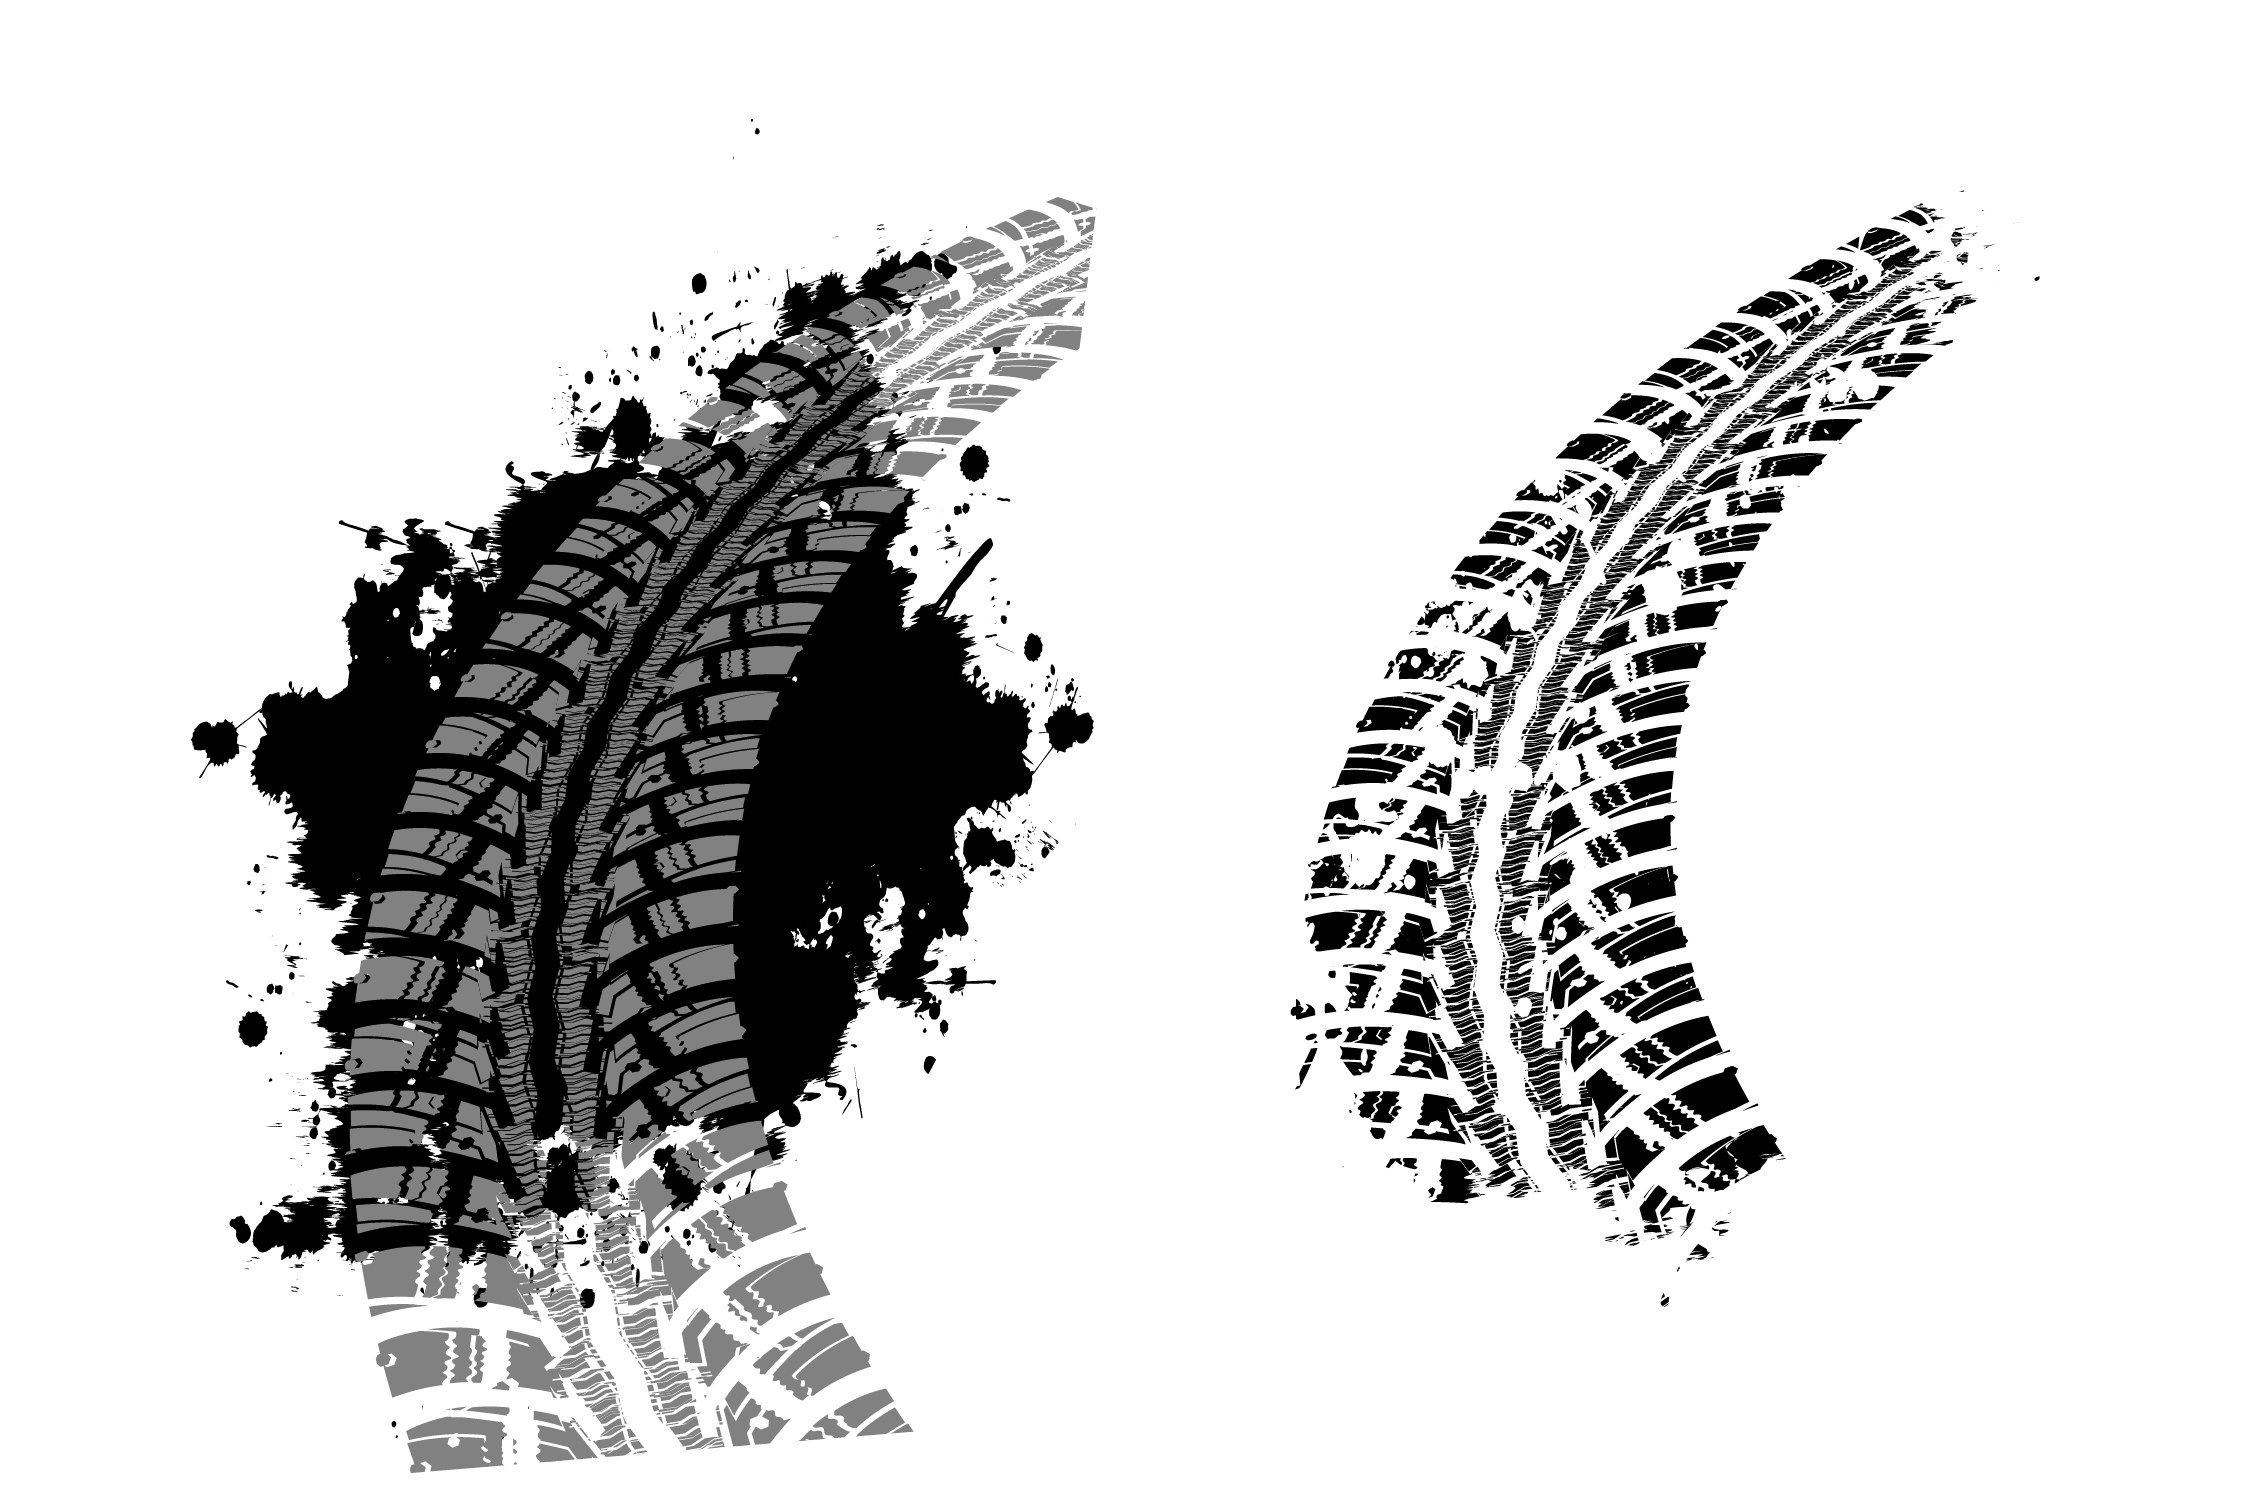 Tire track png. Car tread axle tyres